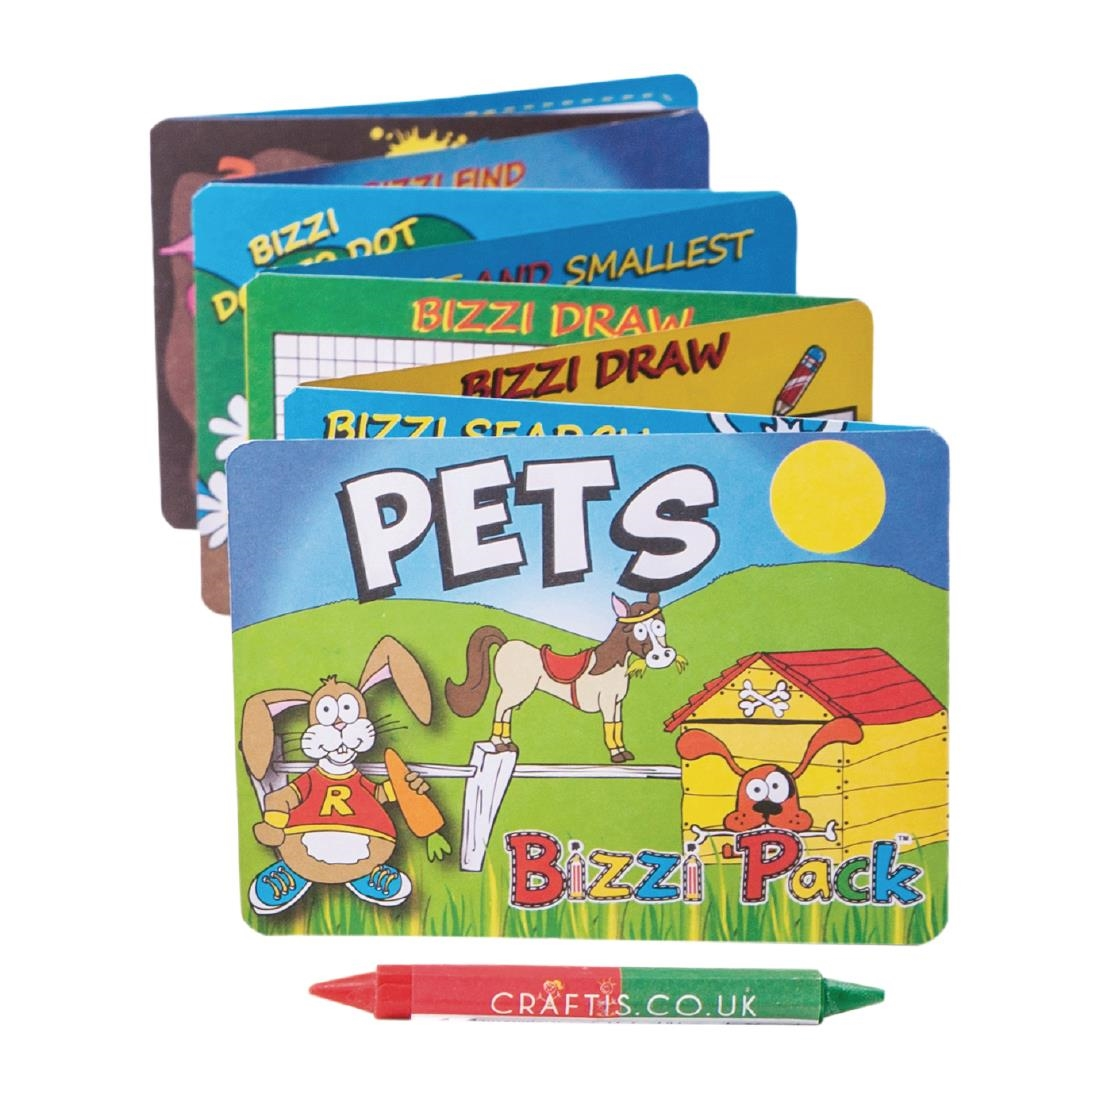 Image of Craftis Kids Activity Pack Assorted Animals (Pack of 400) Pack of 400